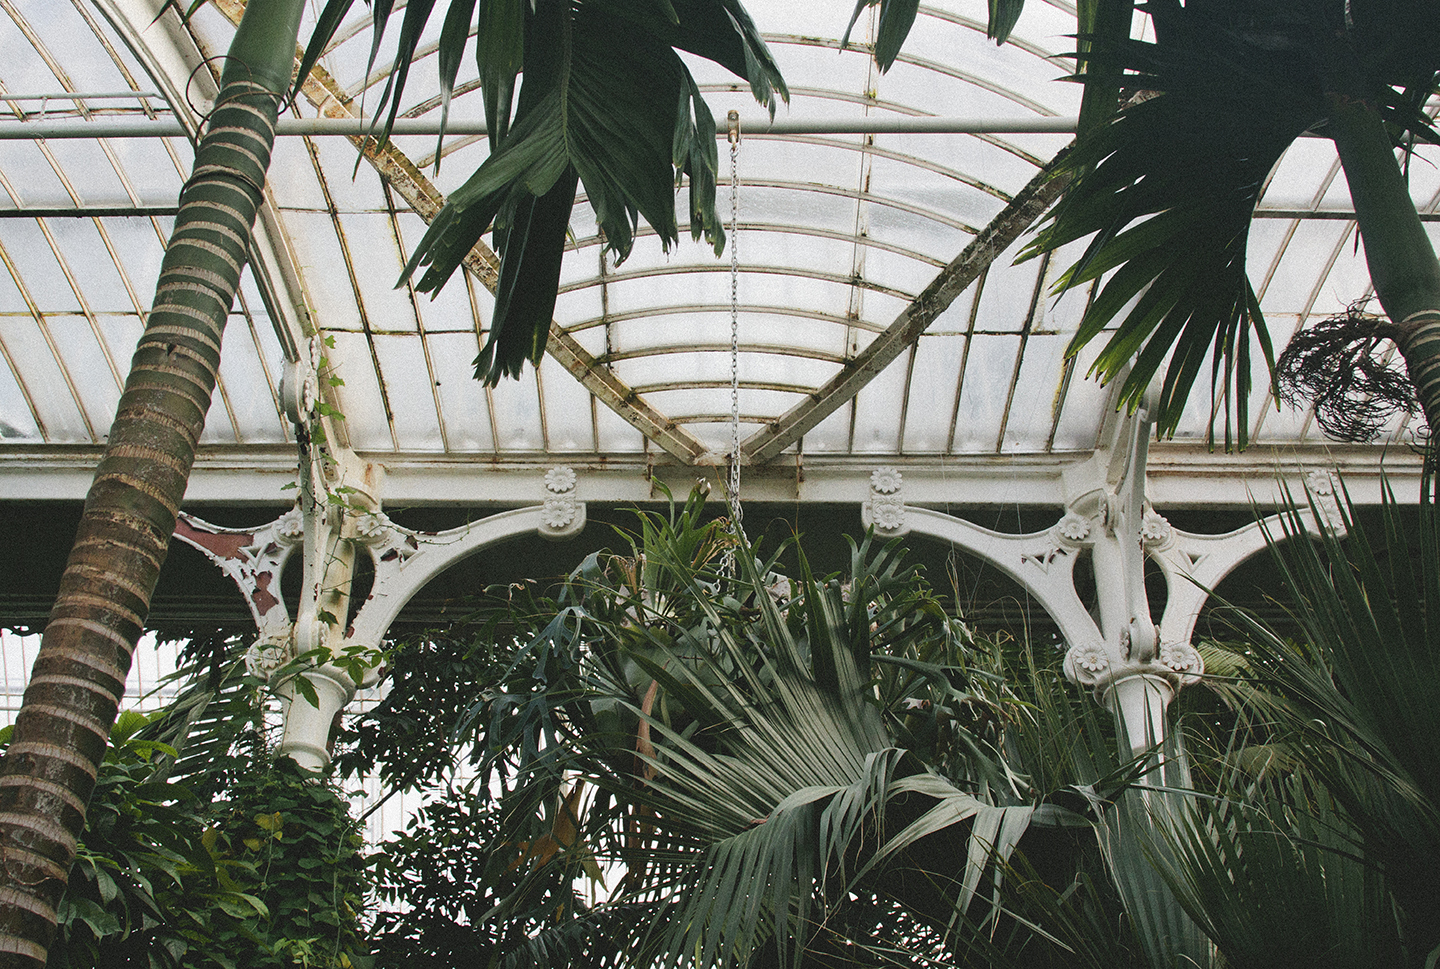 Kew Gardens Palm House from the Print Club ltd. Journal